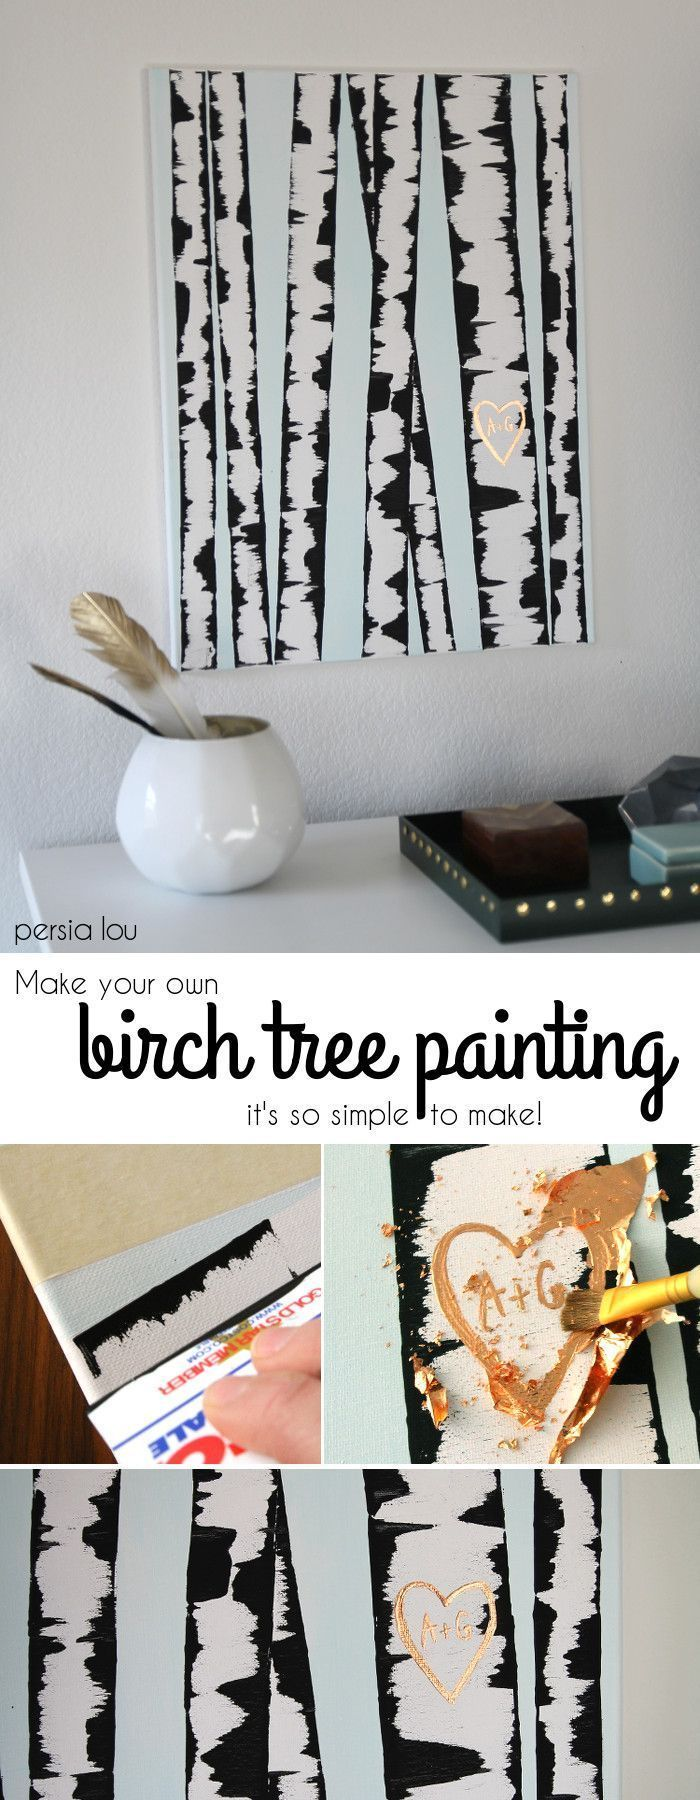 Cheap and simple homemade wall art design